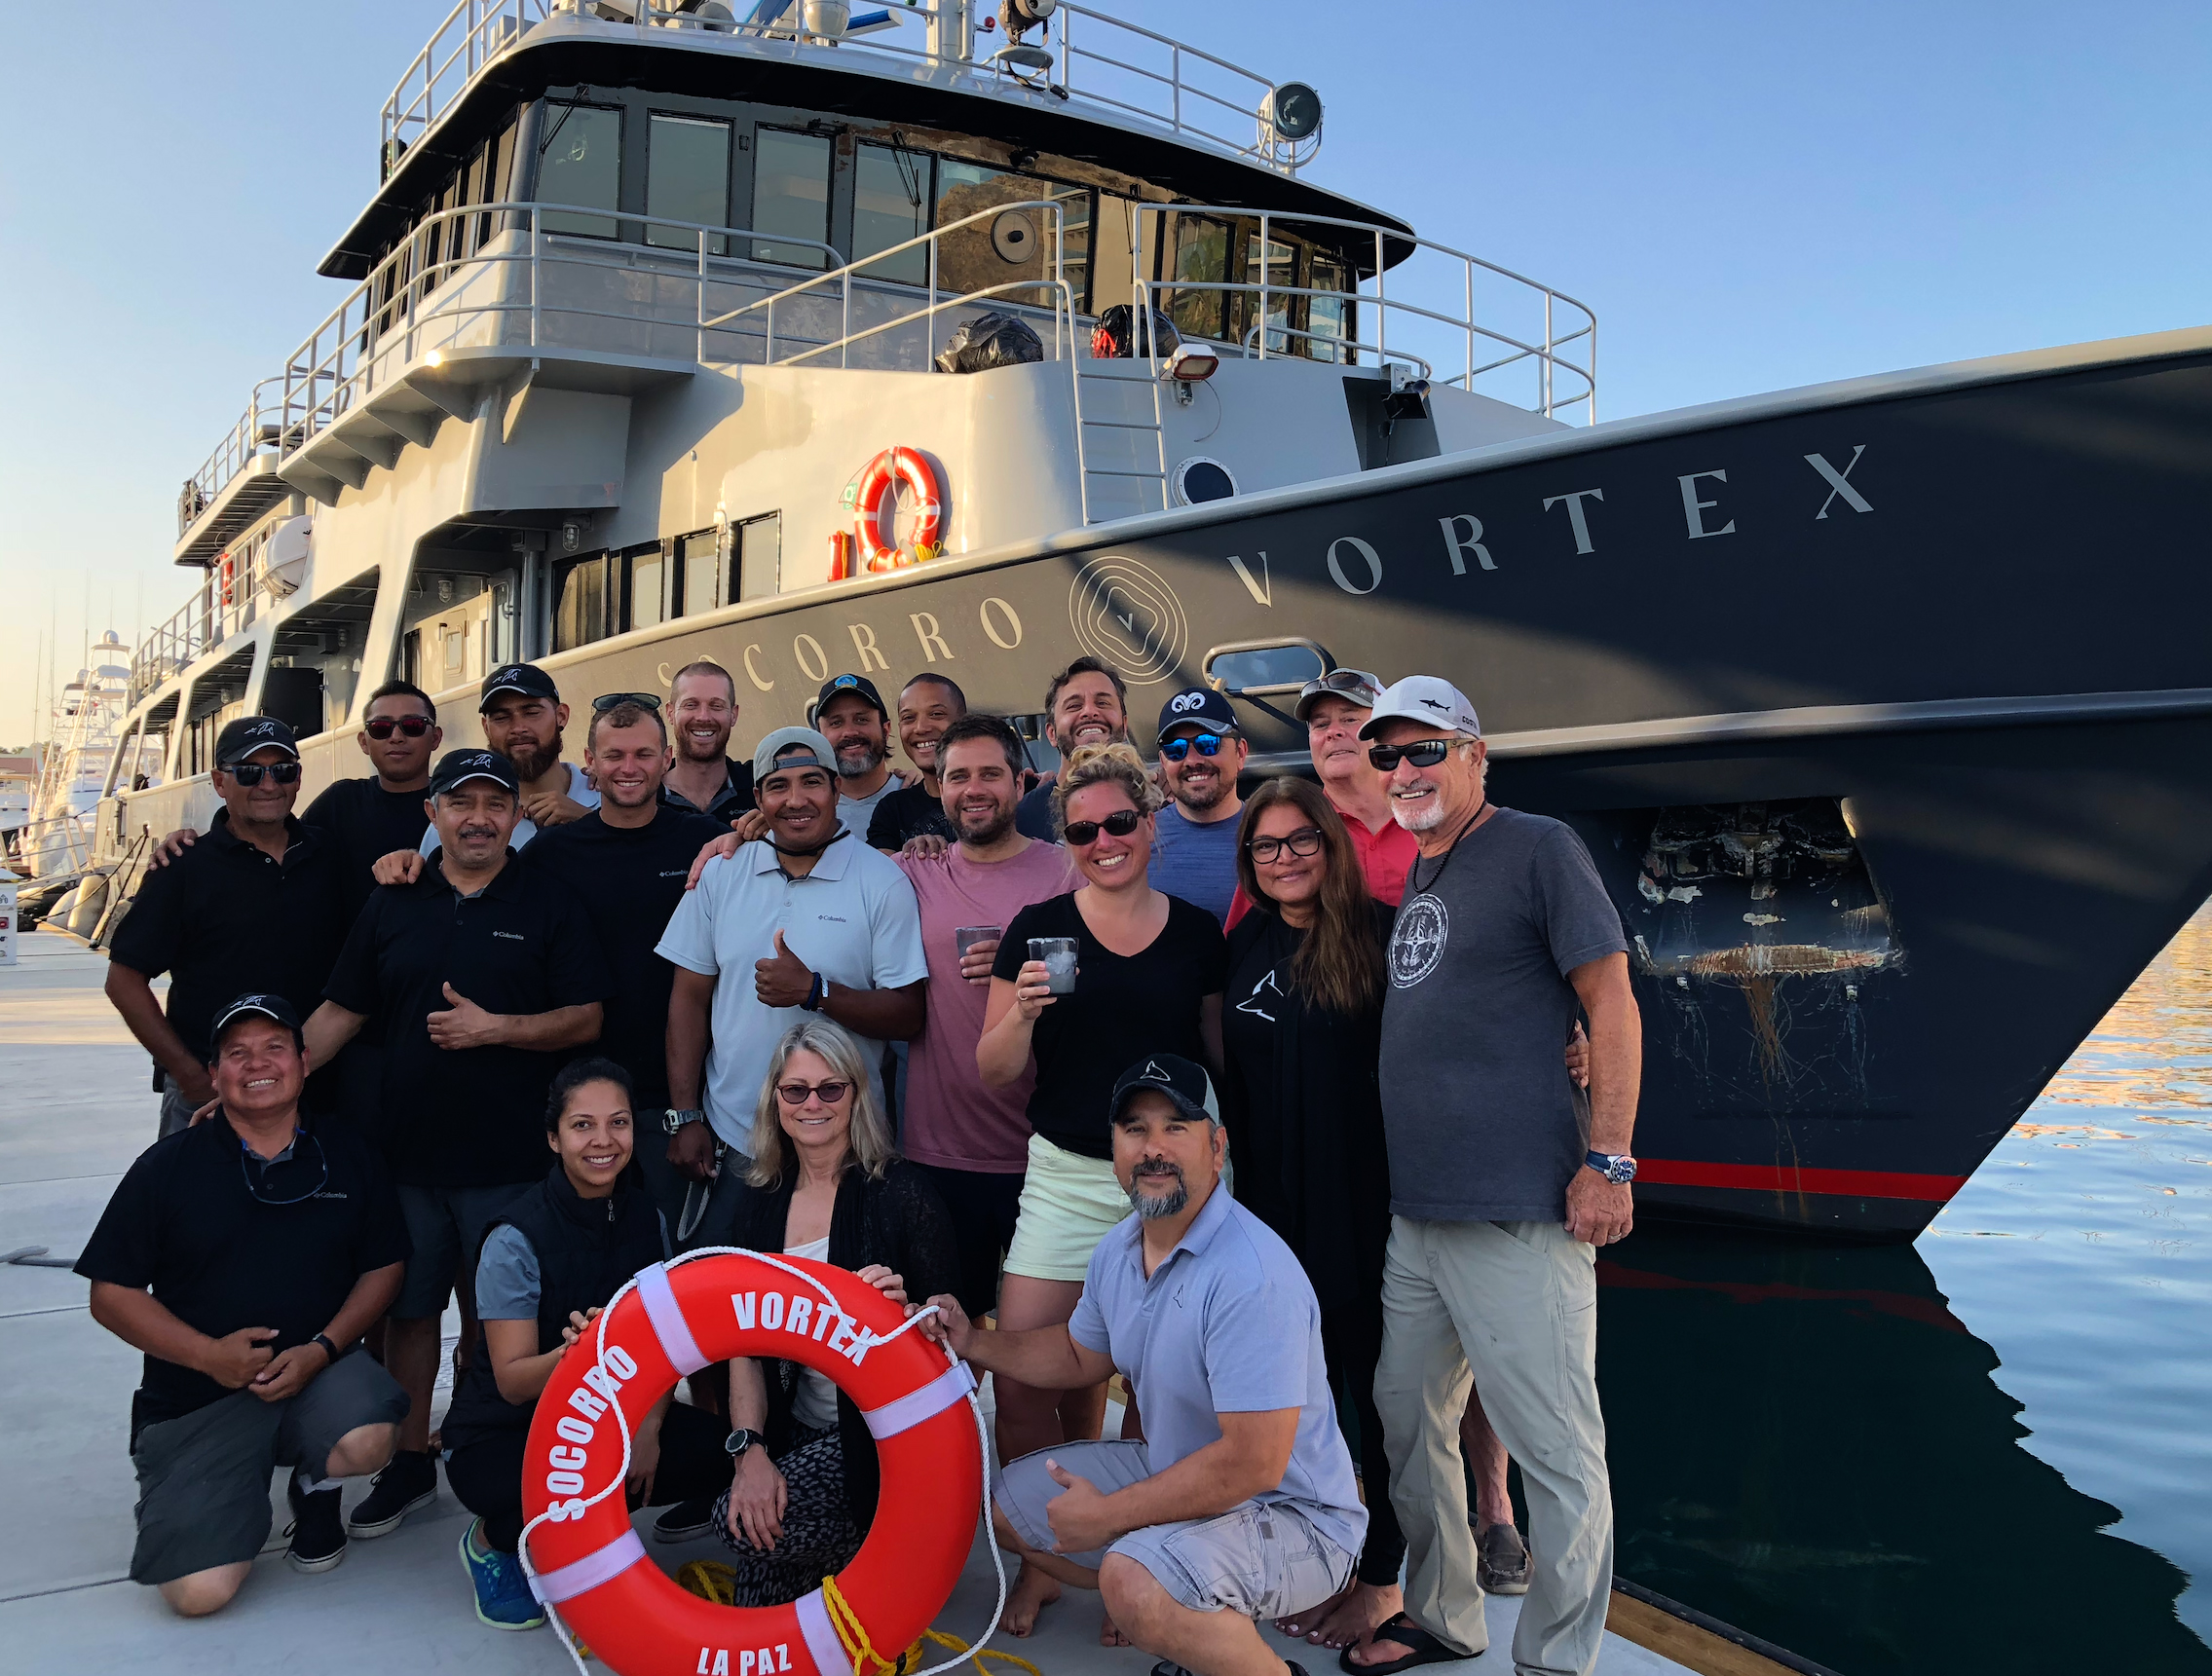 With the group of dive crazies that joined us on this adventure and the amazing crew of the Vortex. Truly enjoyed our time together my friends. Hope to share adventures with you guys again very soon.  Big hug!